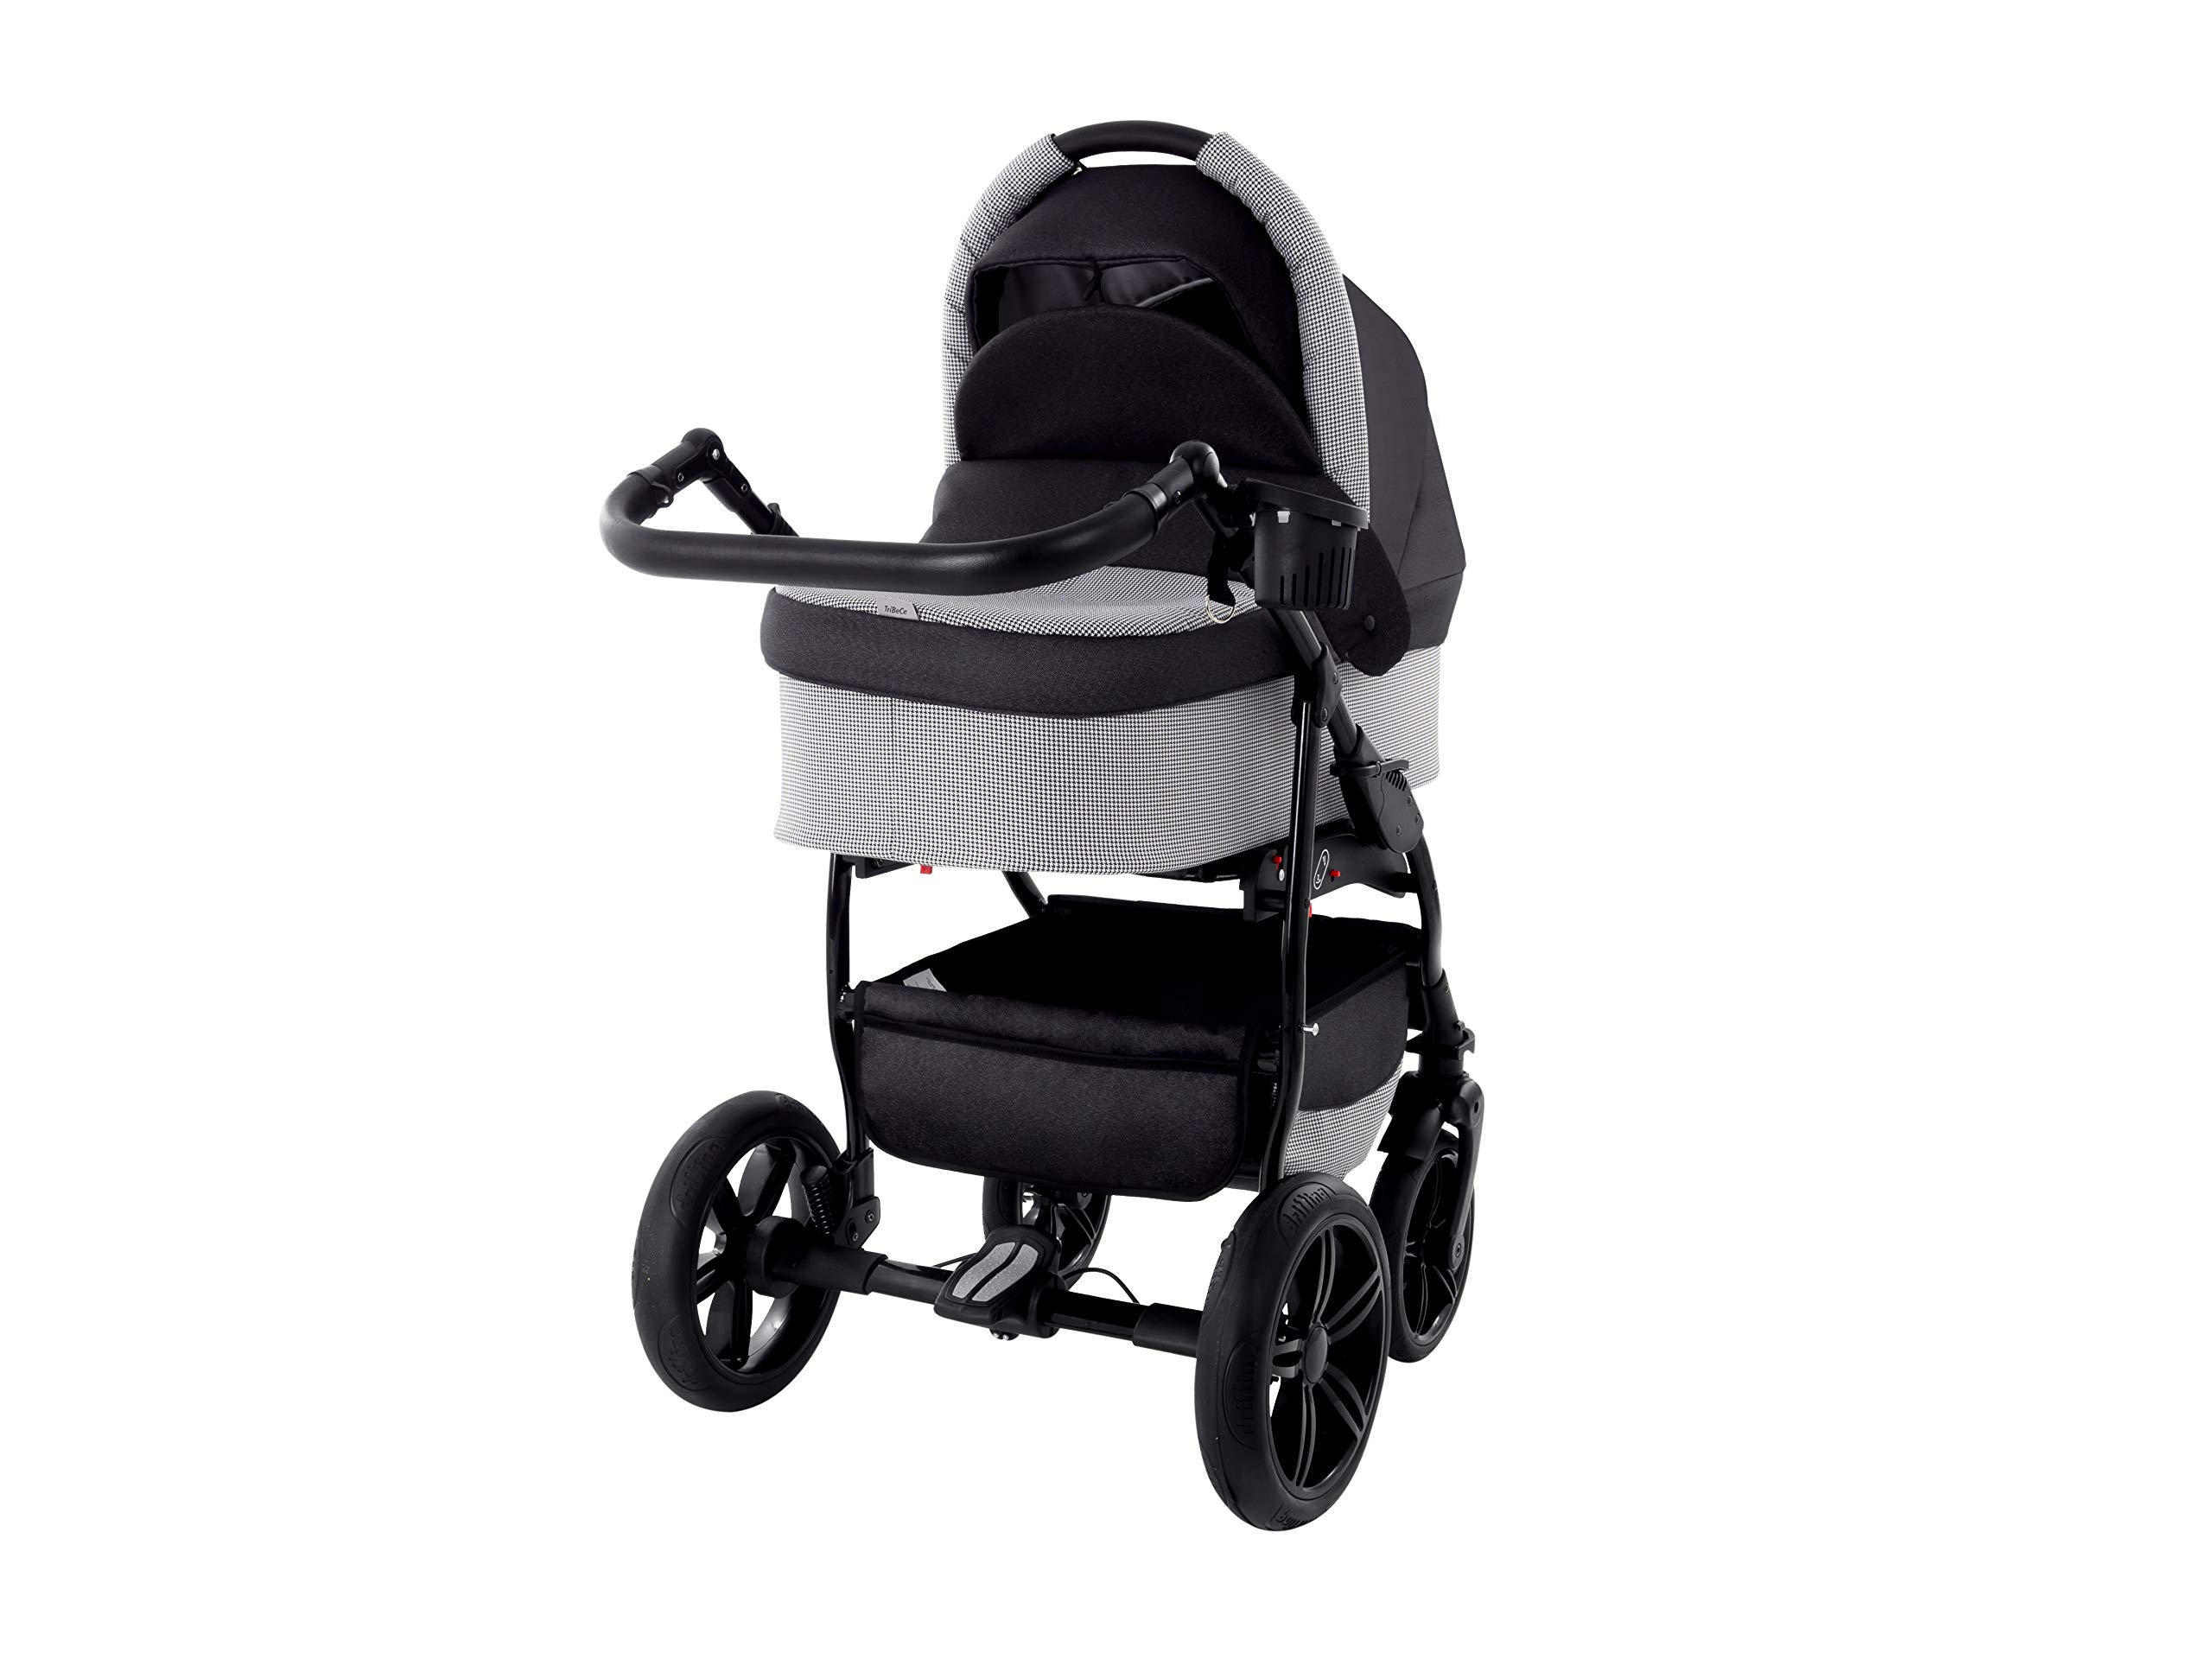 Baby Pram Zeo Wind 3in1 Set - All You Need! carrycot Gondola Buggy Sport Part Pushchair car seat (54) Zeo 3 in 1 combination stroller complete set, with reversible seat units to the buggy, child car seat or baby carriage The baby carriage is suitable for babies from 0 months to 3 years (0-15 kg) Has 360 ° swiveling wheels, four-fold suspension, four-stage backrest, five-position adjustable footrest and a five-point safety belt 6